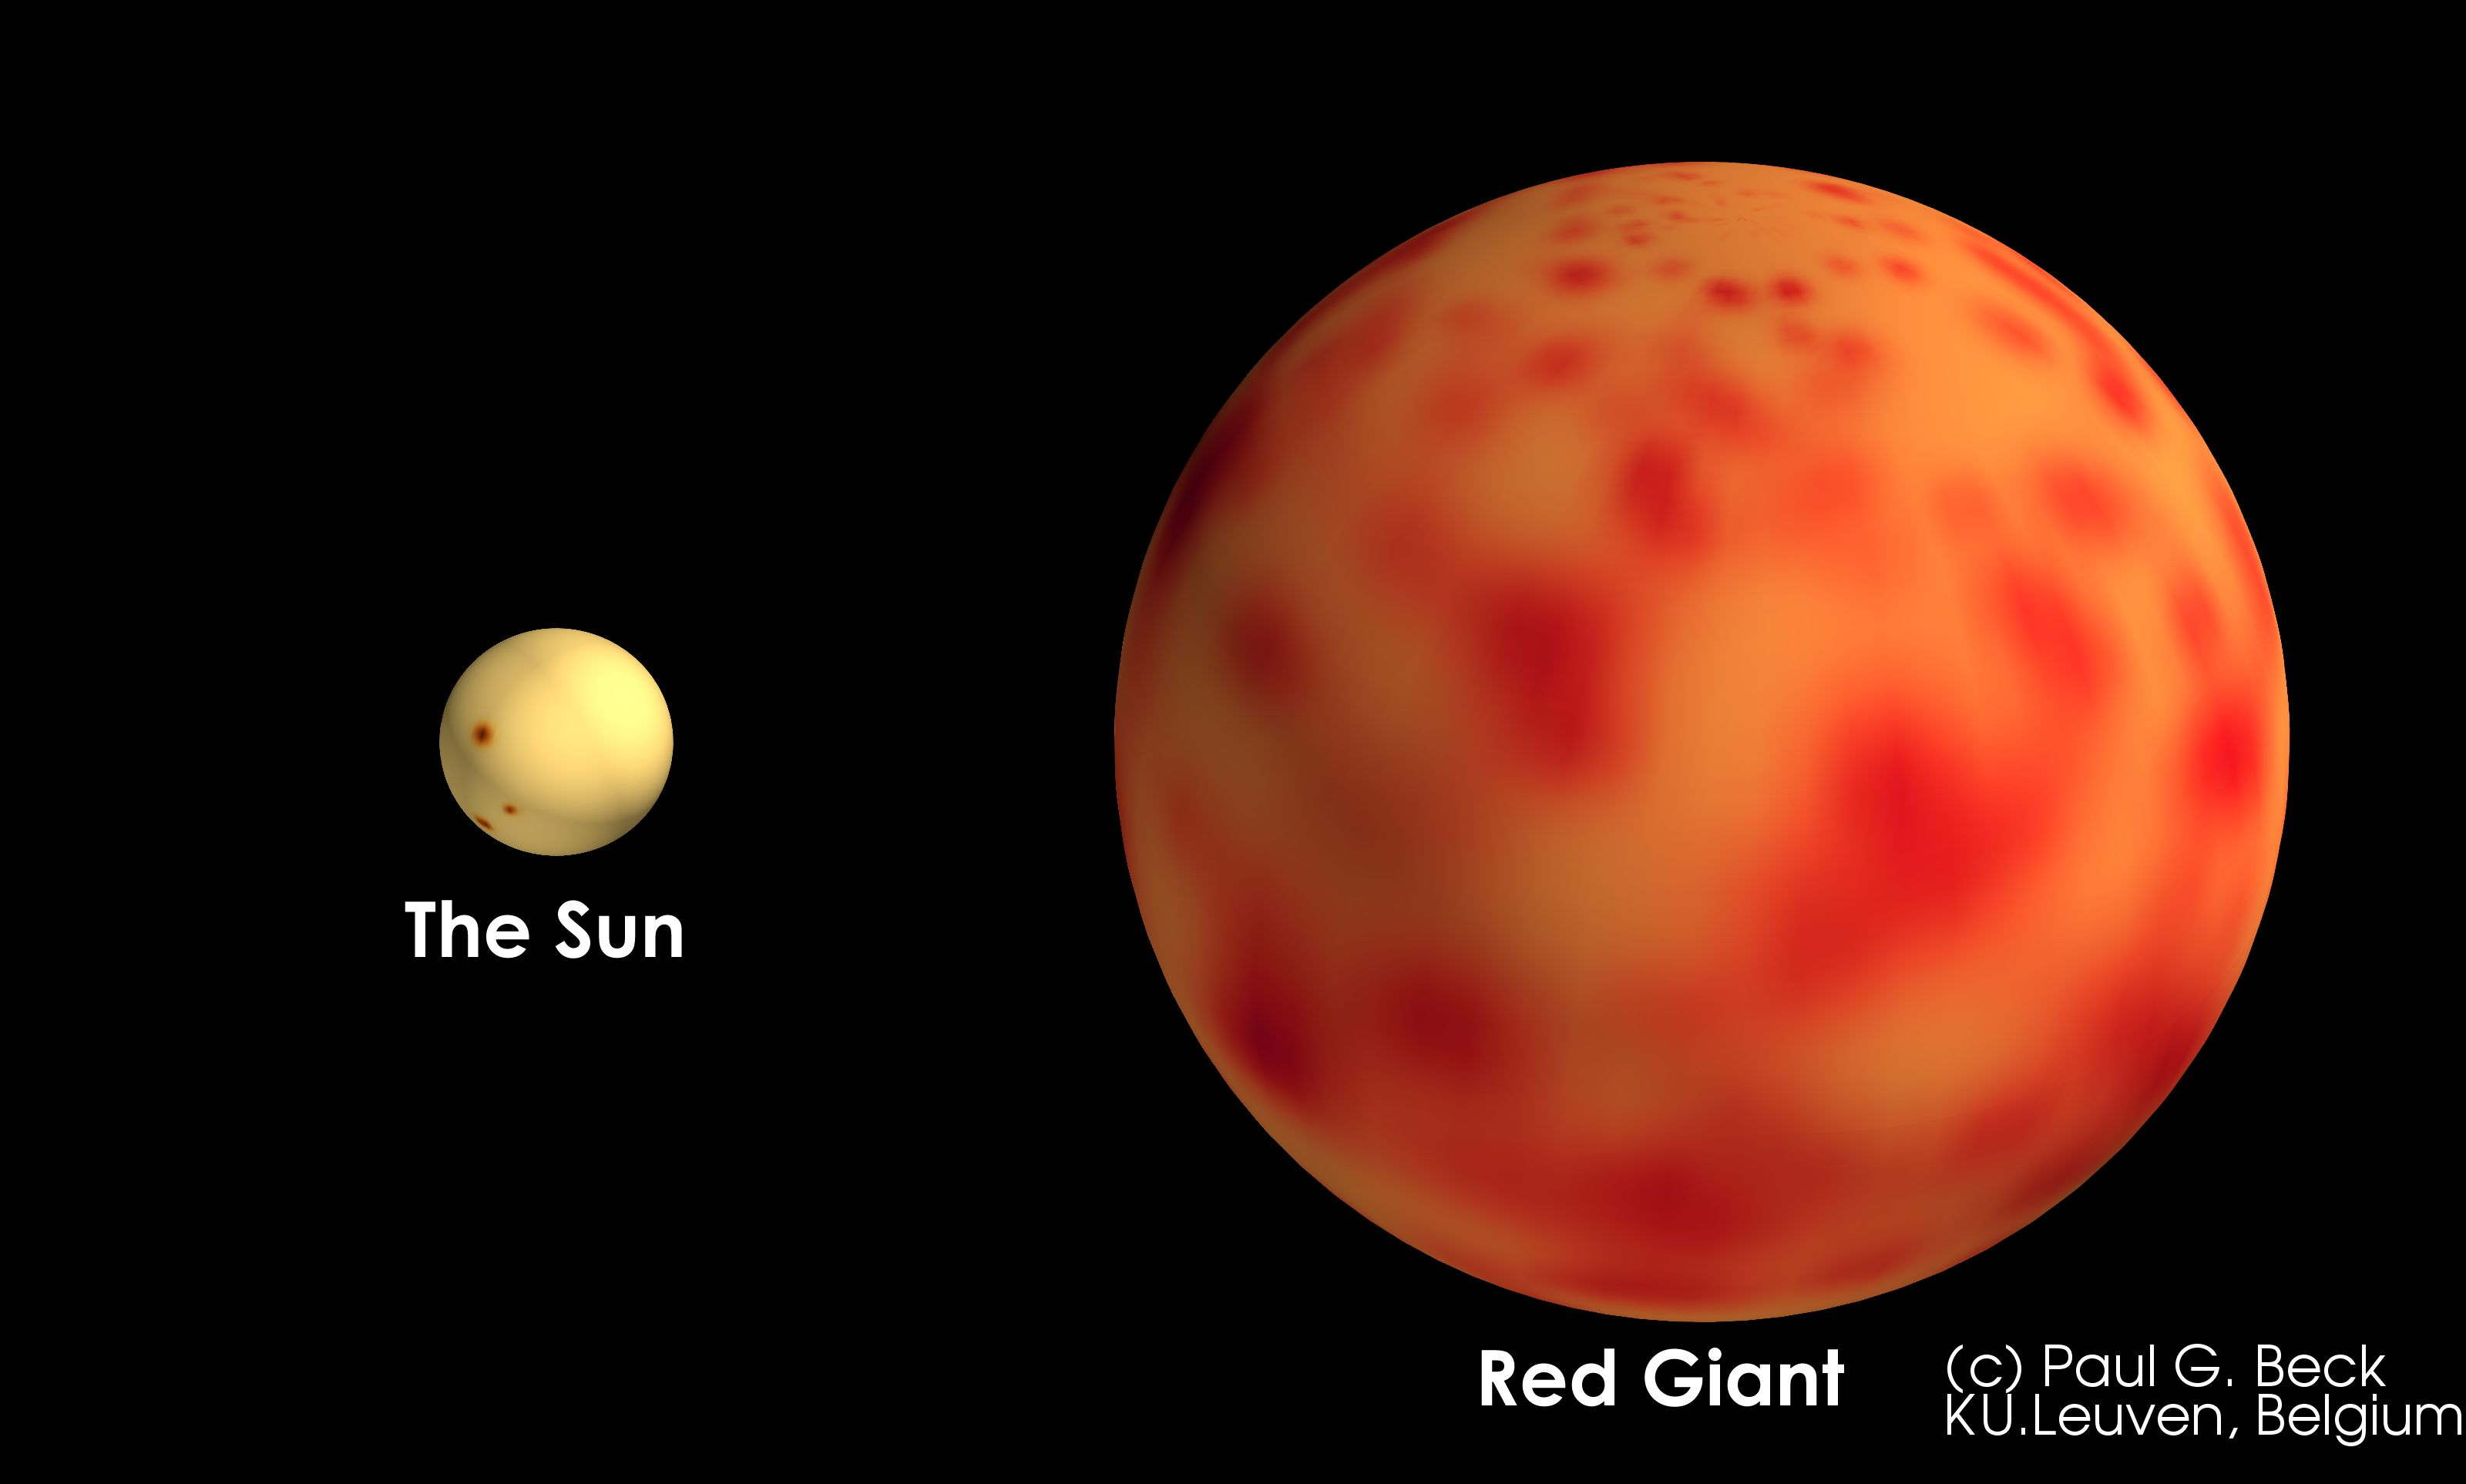 red giant star - 978×608